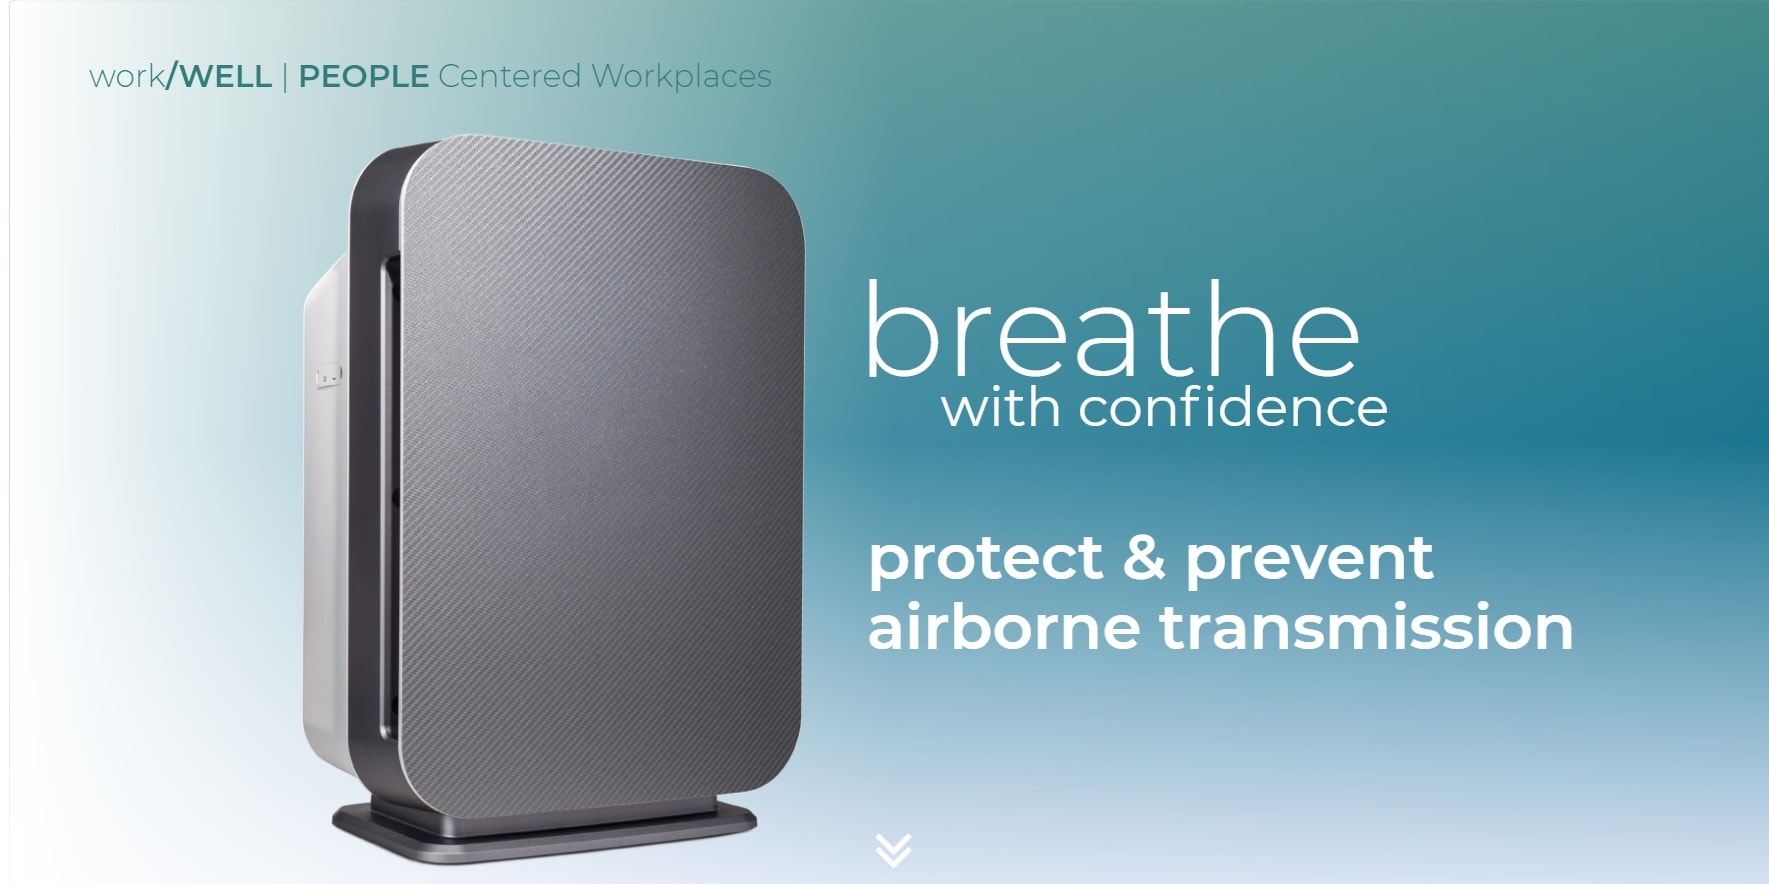 breathe pure air with confidence